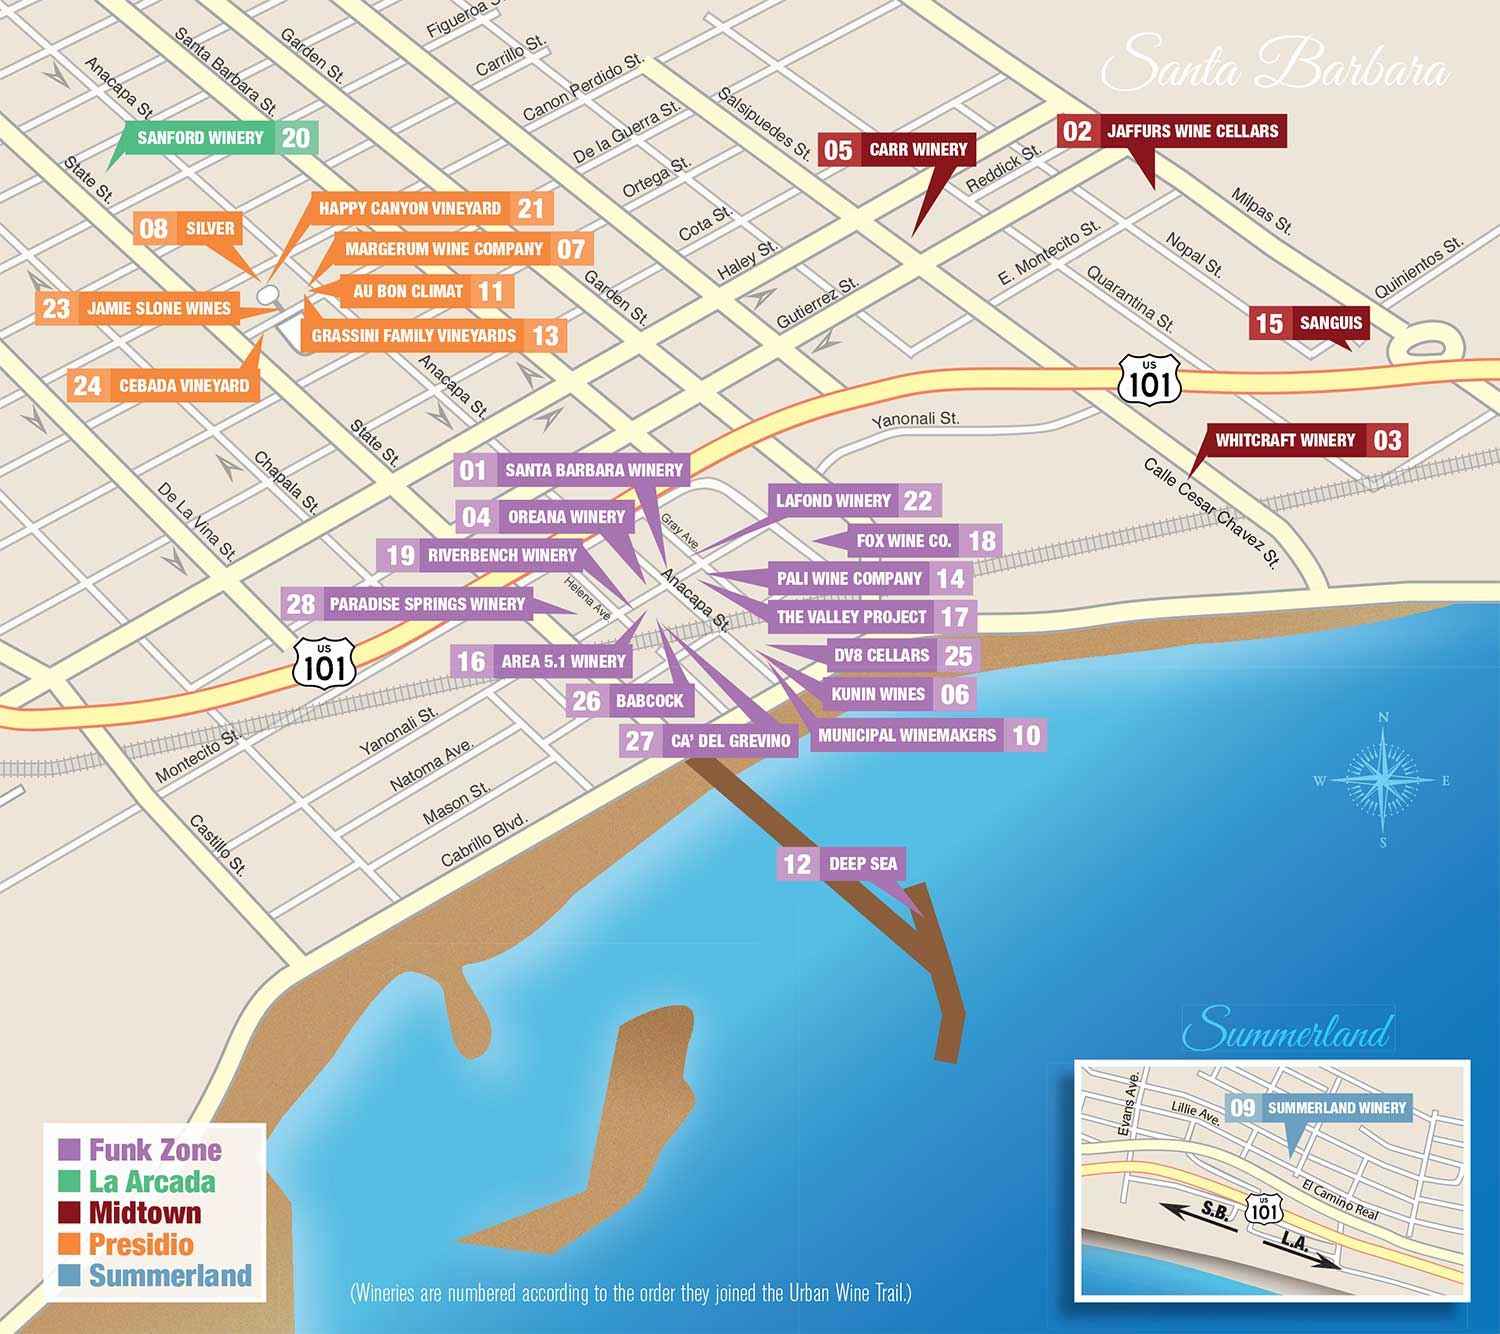 Santa Barbara Urban Wine Trail Map - California Wine Trail Map